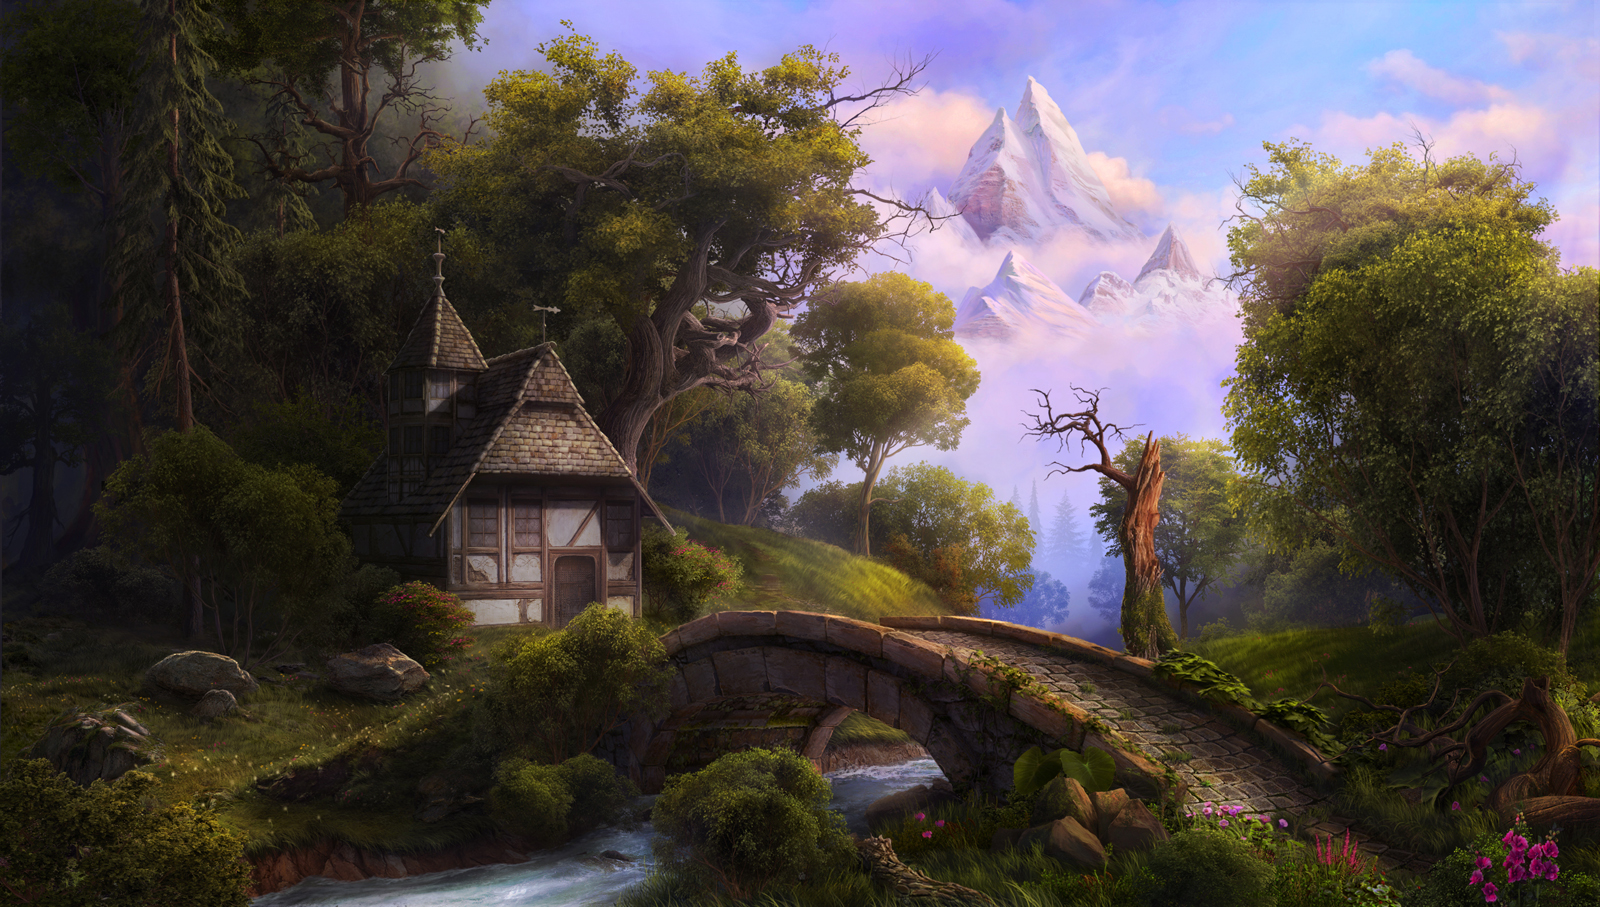 Real Fairytale Landscapes fairytale landscape by...